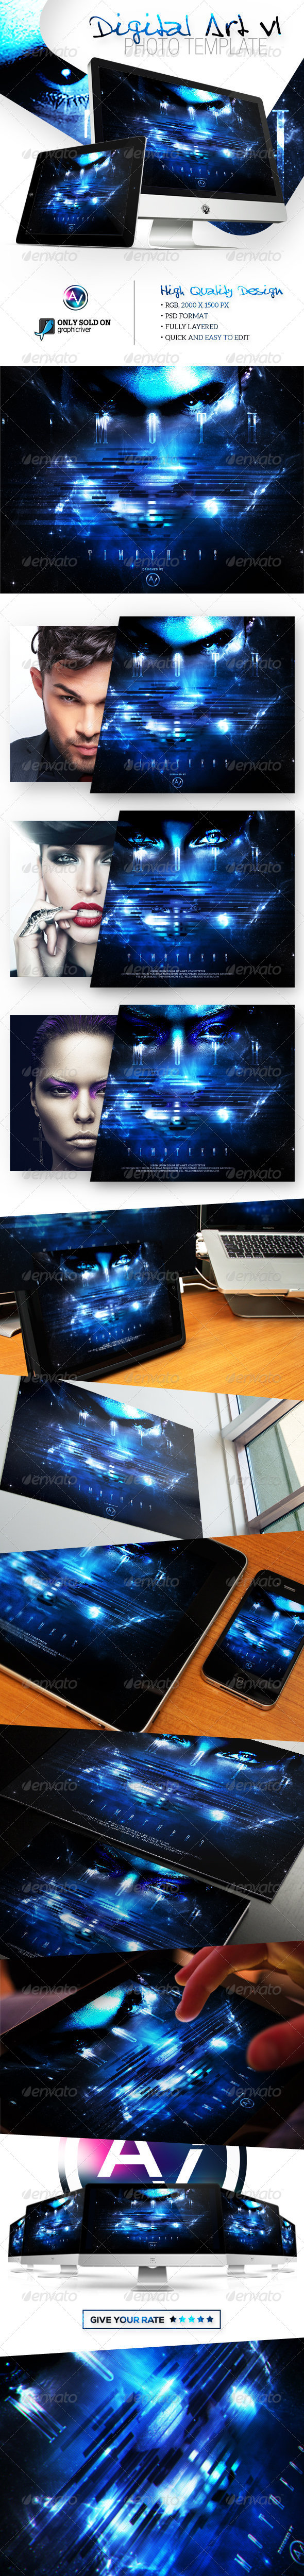 Digital Art Photo Template V1 - Tech / Futuristic Photo Templates